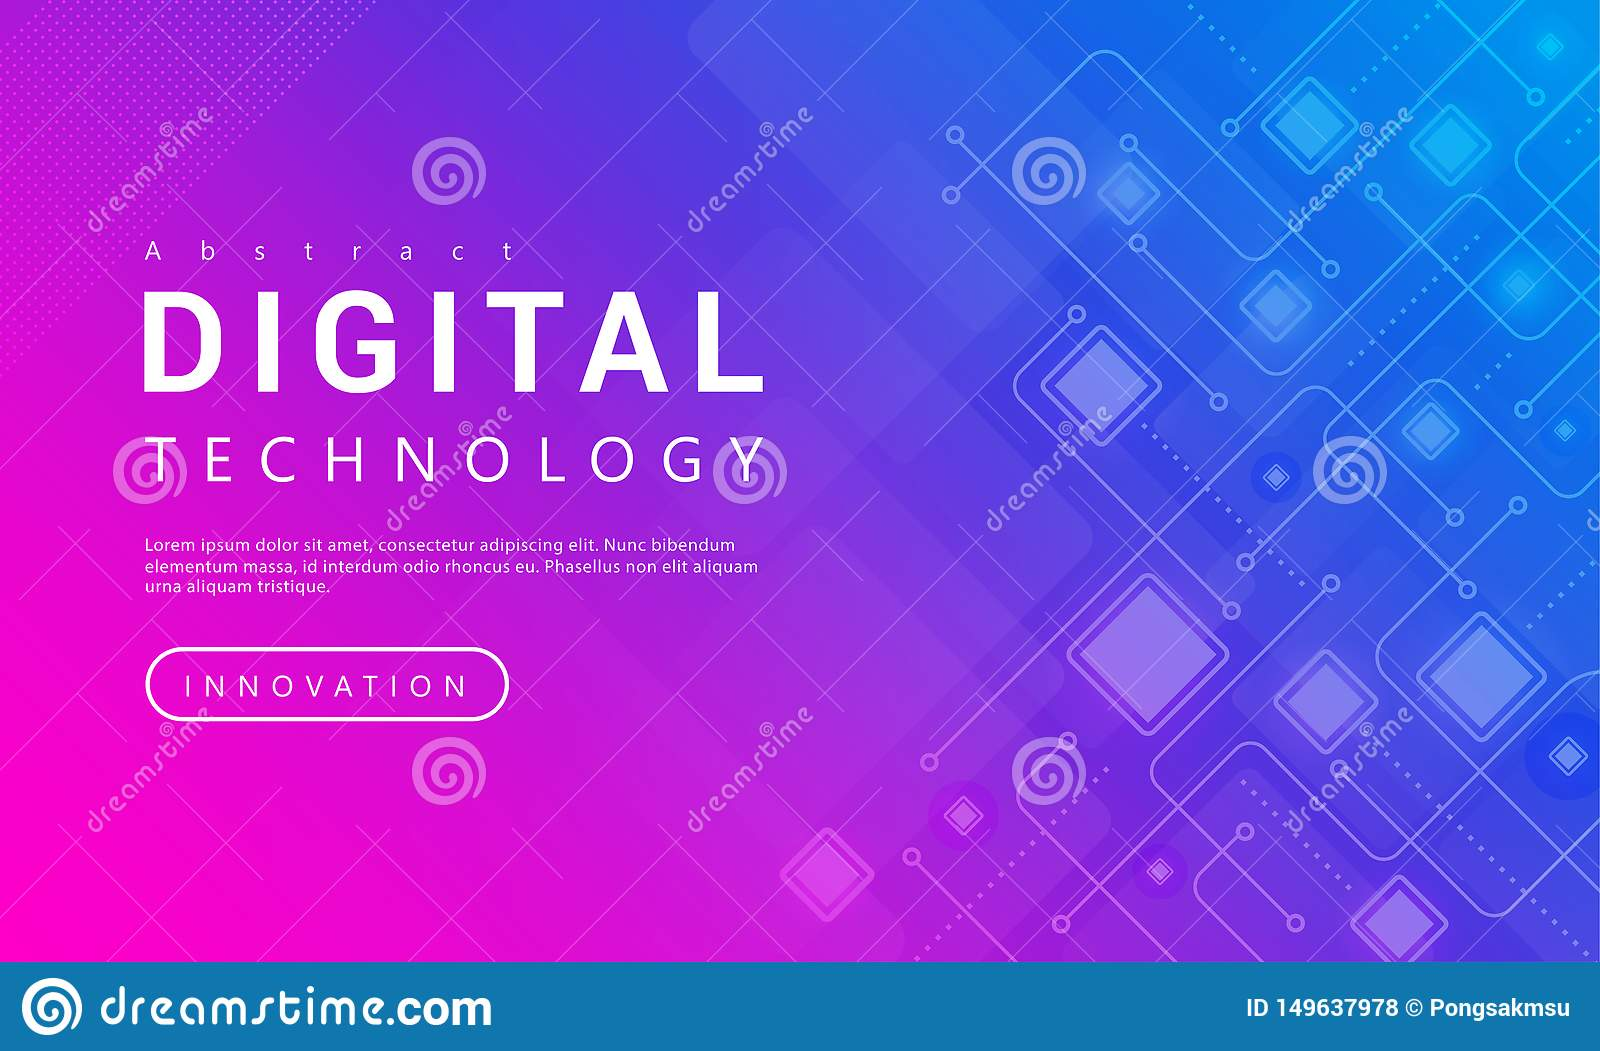 Digital technology banner pink blue background concept with technology line light effects, abstract tech